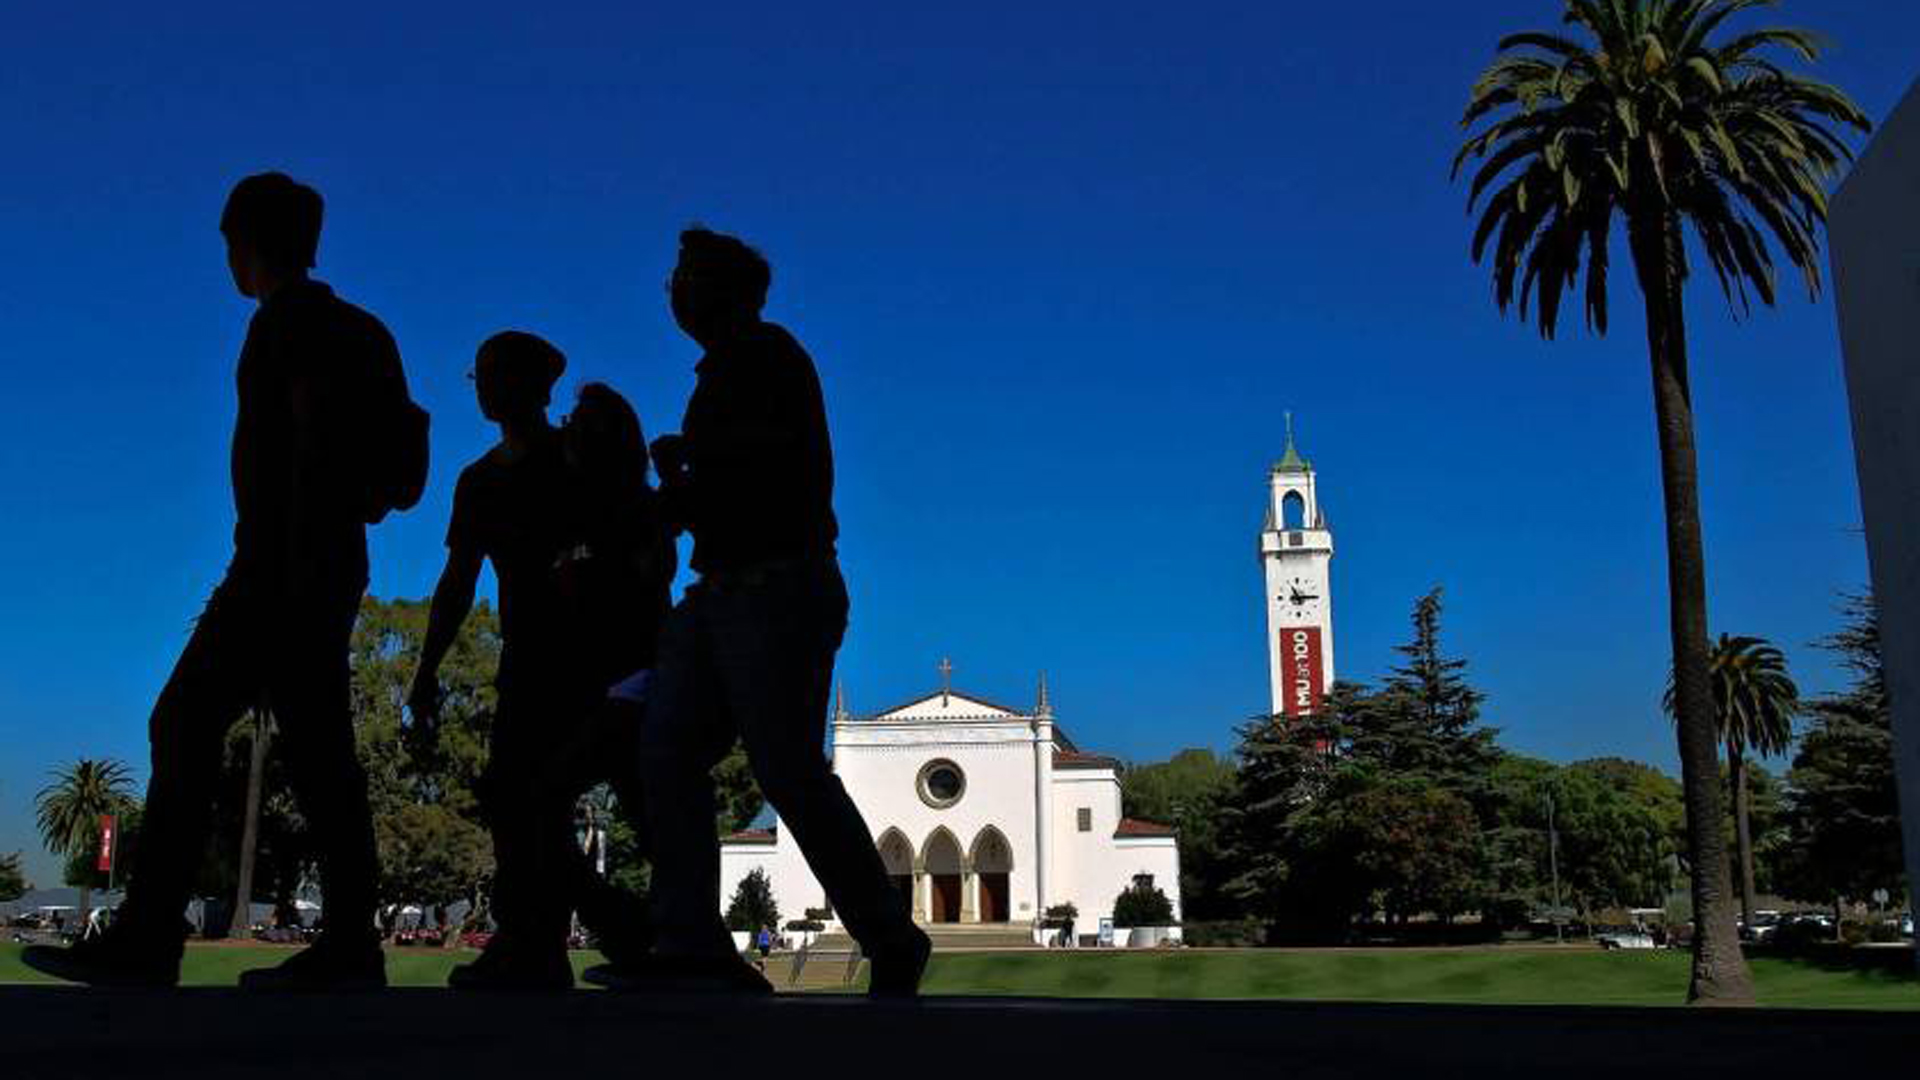 Loyola Marymount University in Los Angeles is the site of a labor dispute between union cooks, dishwashers and servers and the company that runs the school's food service.(Credit: Los Angeles Times)